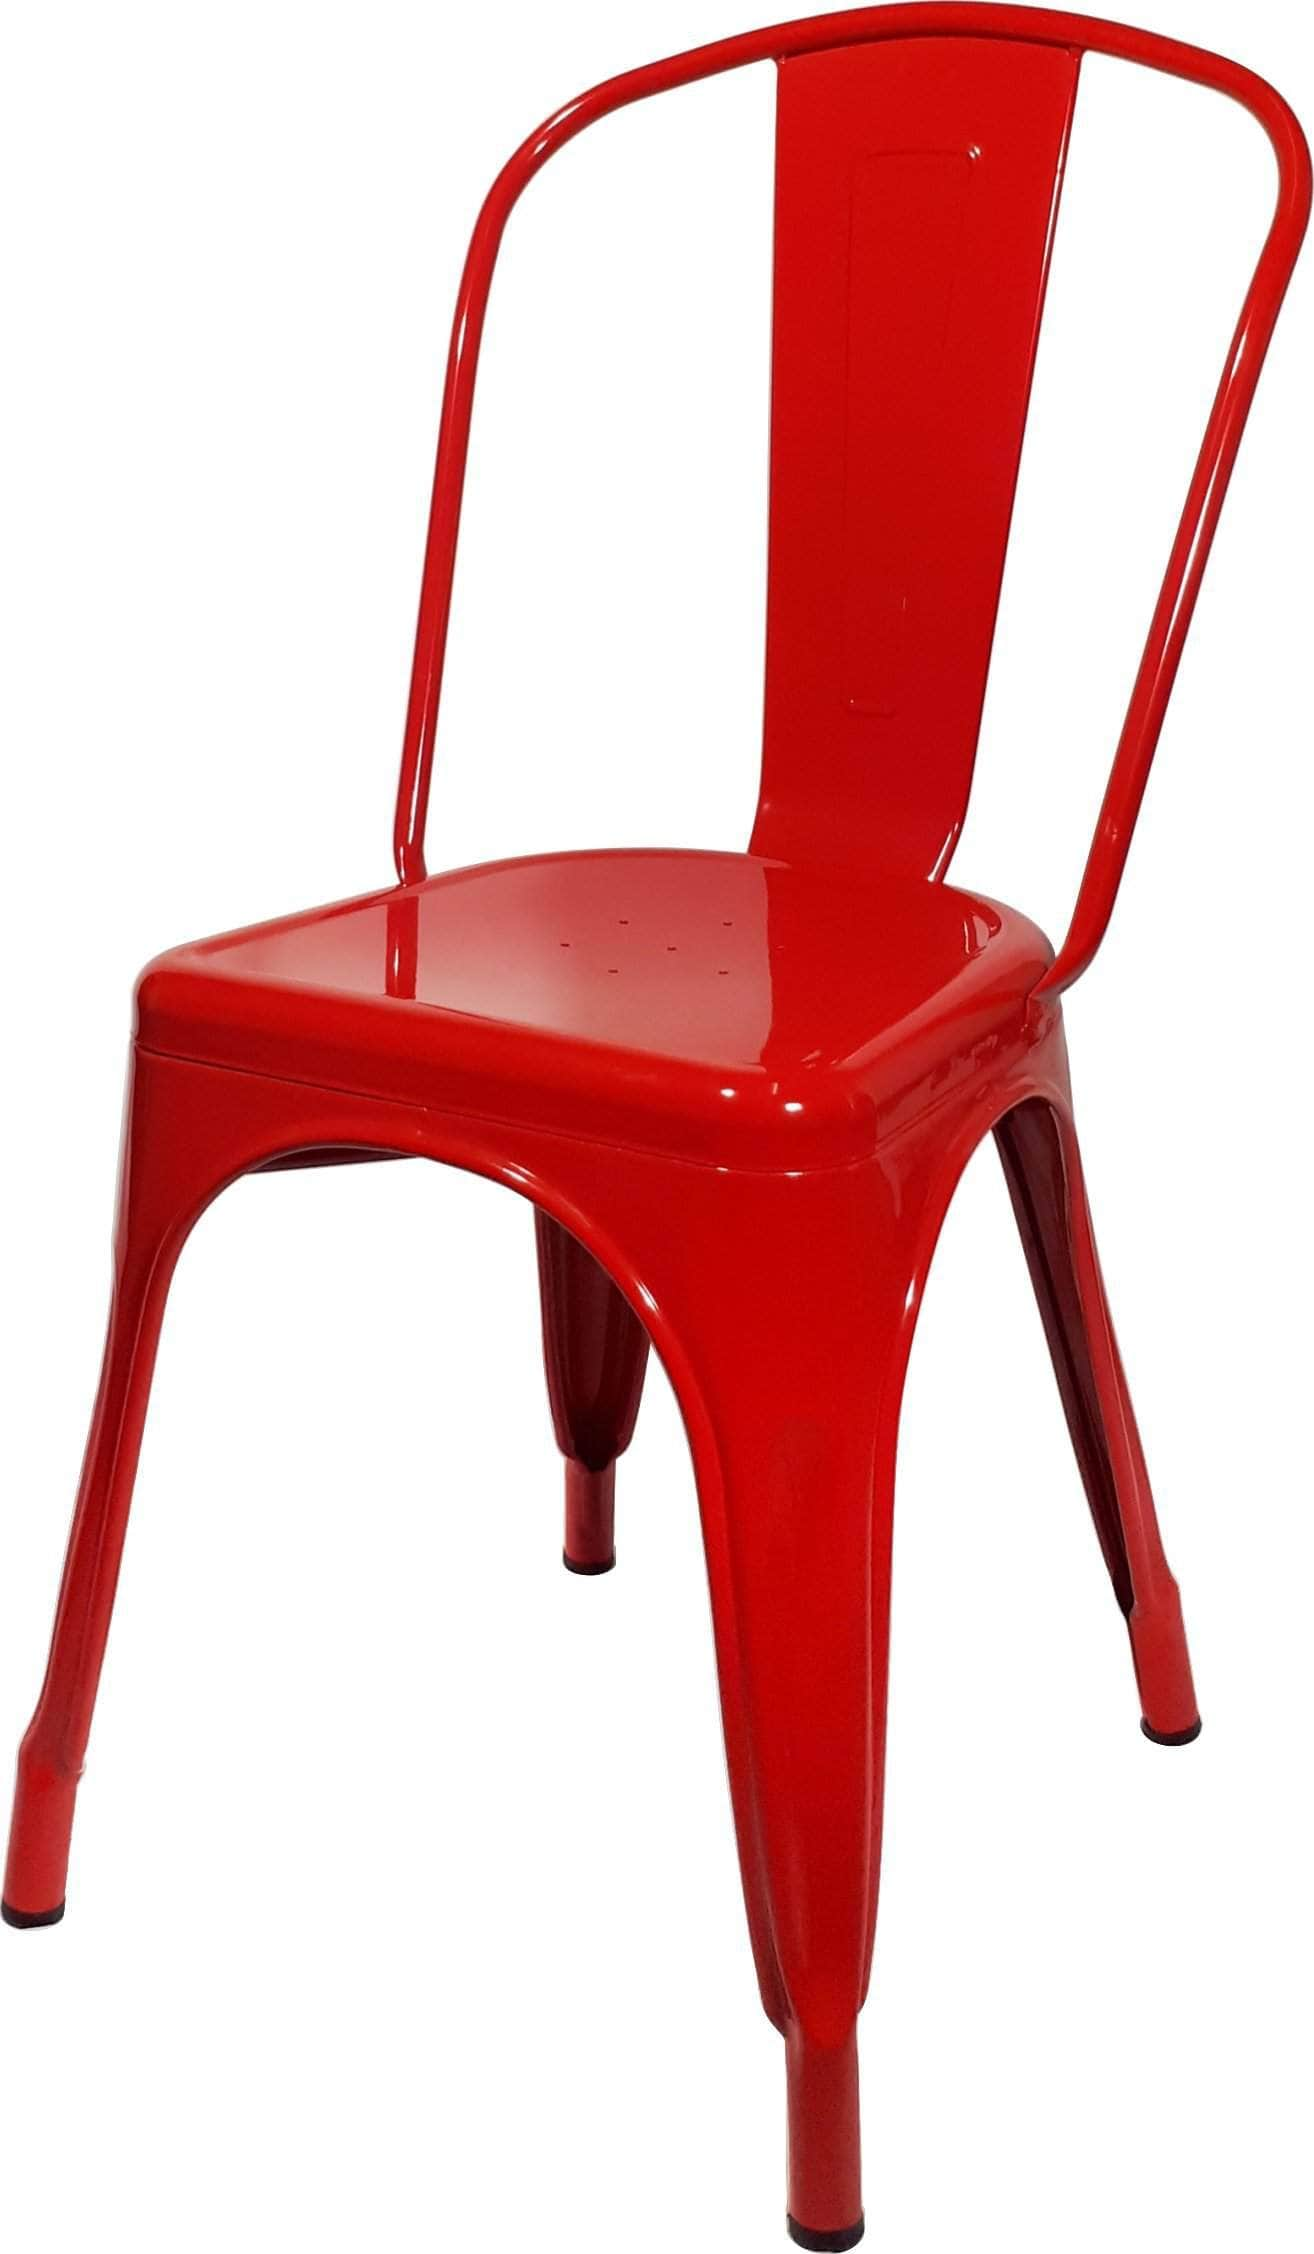 red replica tolix cafe chair with high back buy online afterpay